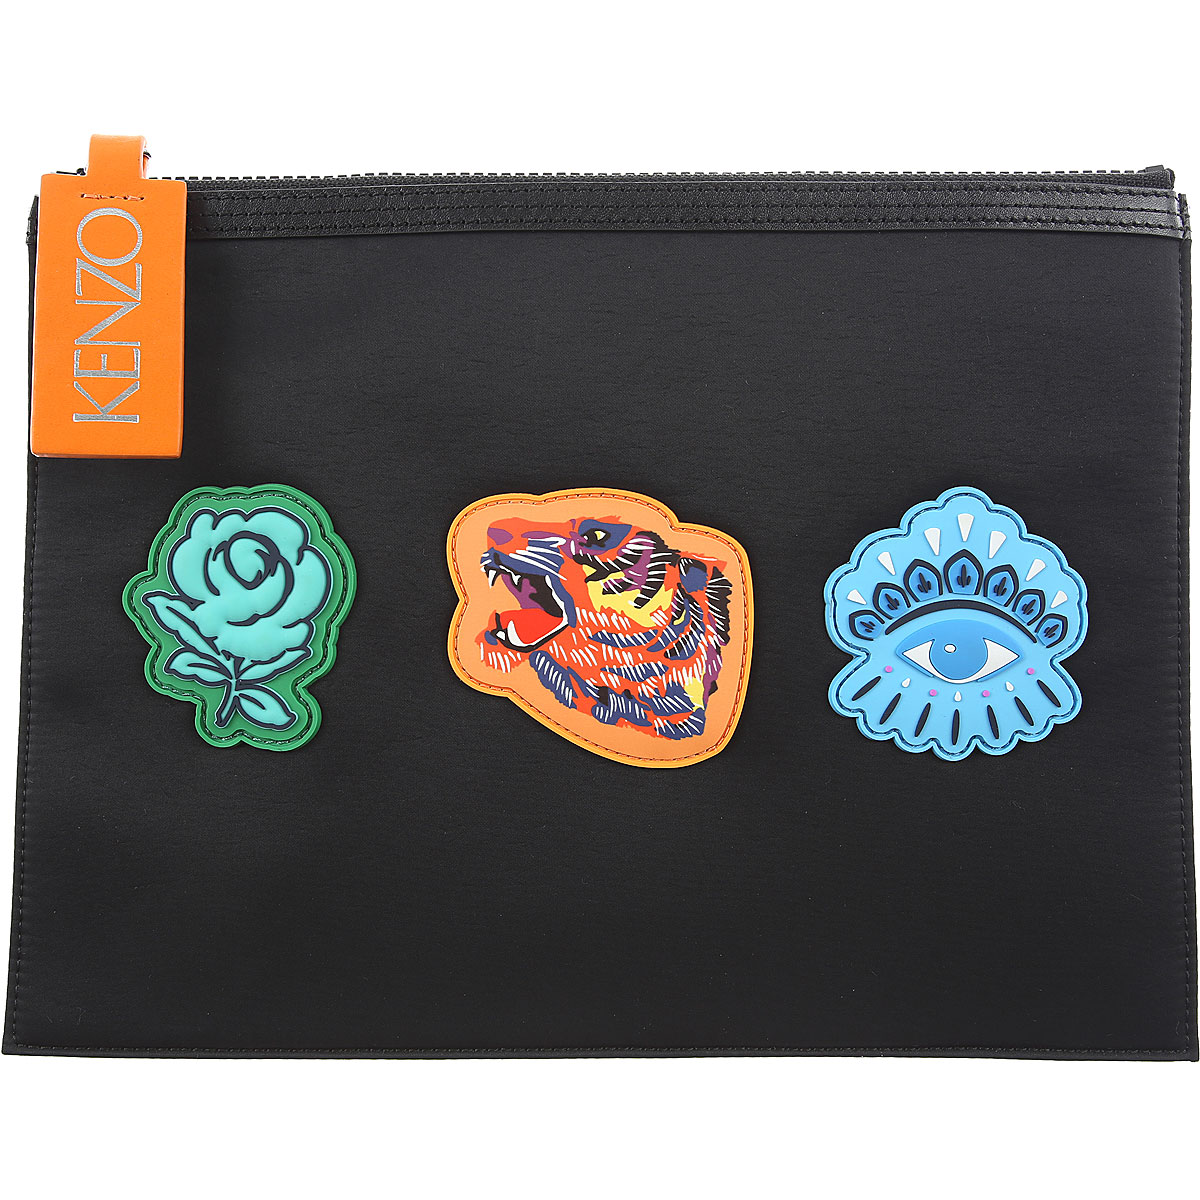 Image of Kenzo Suits, Ipad Case, Black, Neoprene, 2017